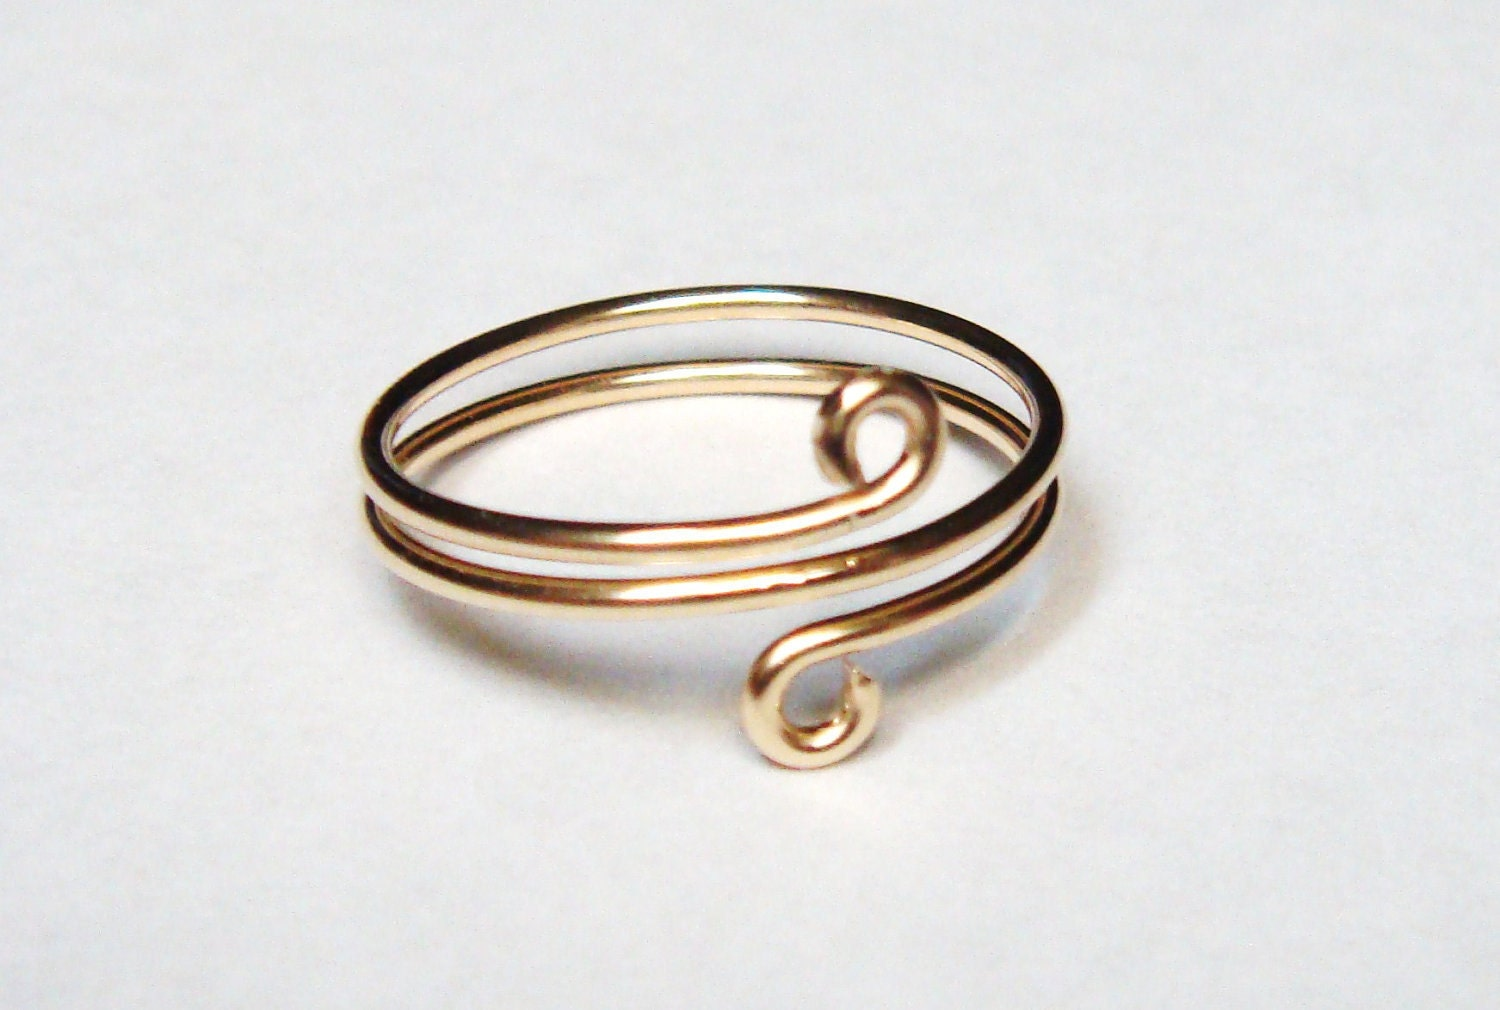 14k solid gold ring toe ring gold wire by spiralsandspice